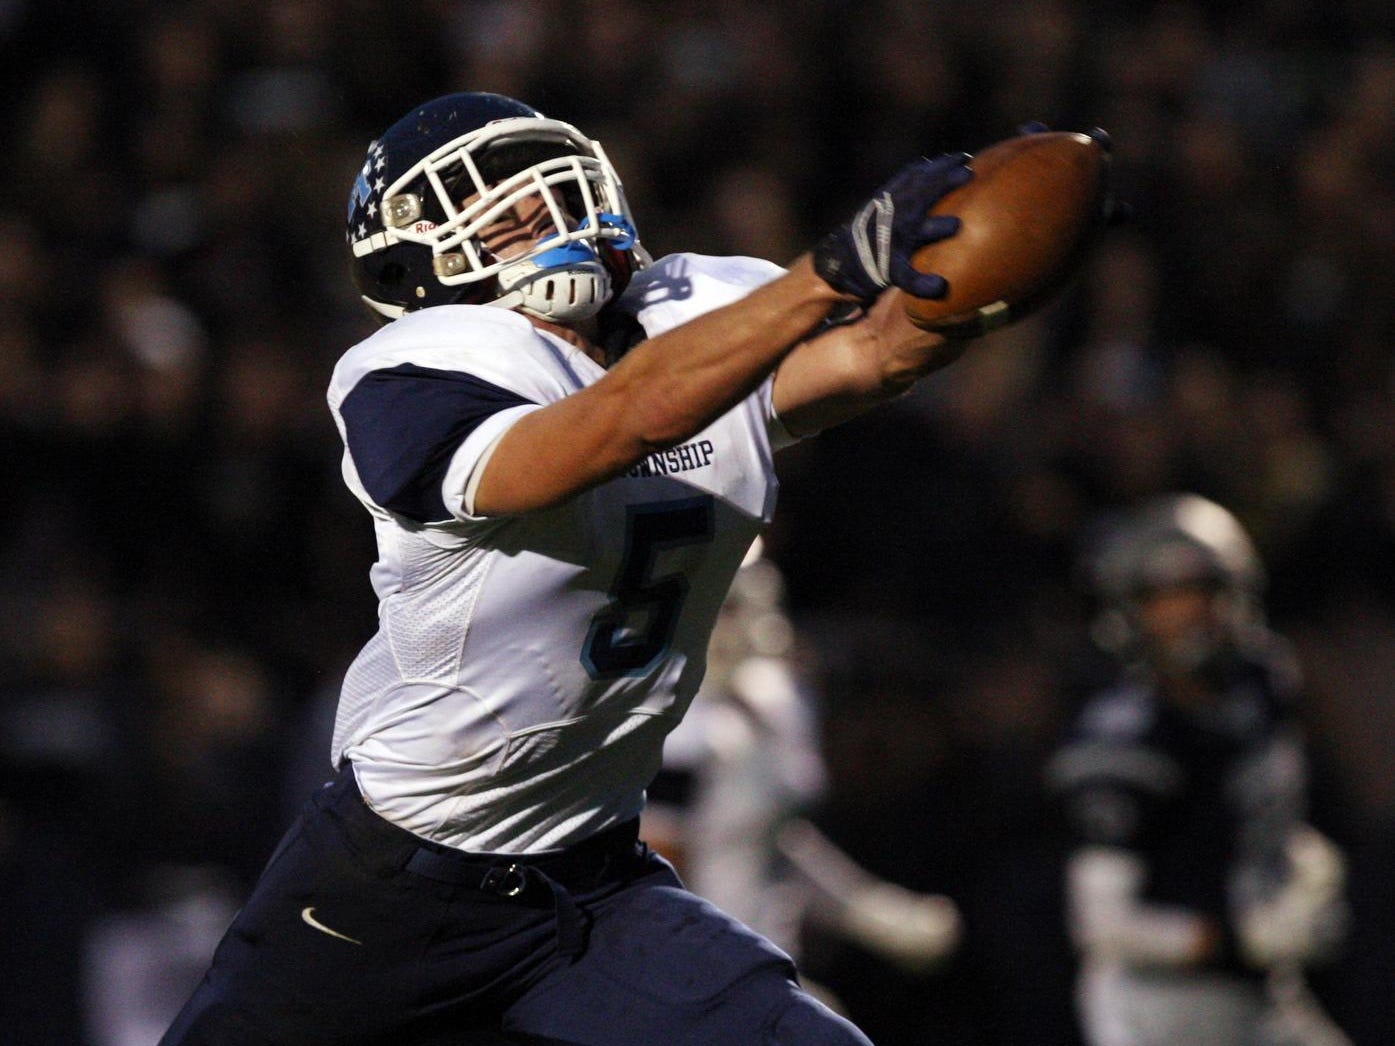 Anthony Lotti, #5 Freehold Township, holds onto the ball to make the catch and score a touchdown against Howell in a football game Friday, September 25, 2015, at Howell High School.